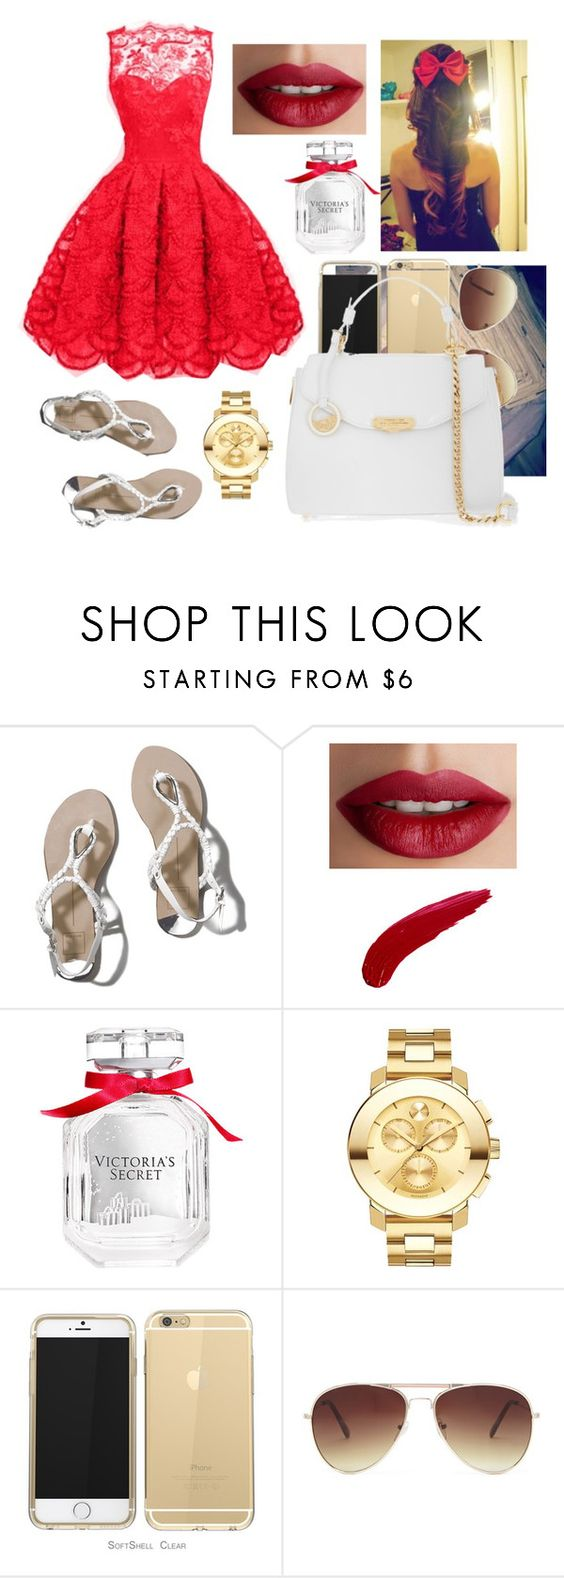 """""""Christmas party! collab with @fashiongirlnat11"""" by lovermonster ❤ liked on Polyvore featuring Abercrombie & Fitch, TheBalm, Victoria's Secret, Movado, Forever 21, Versace, women's clothing, women, female and woman"""